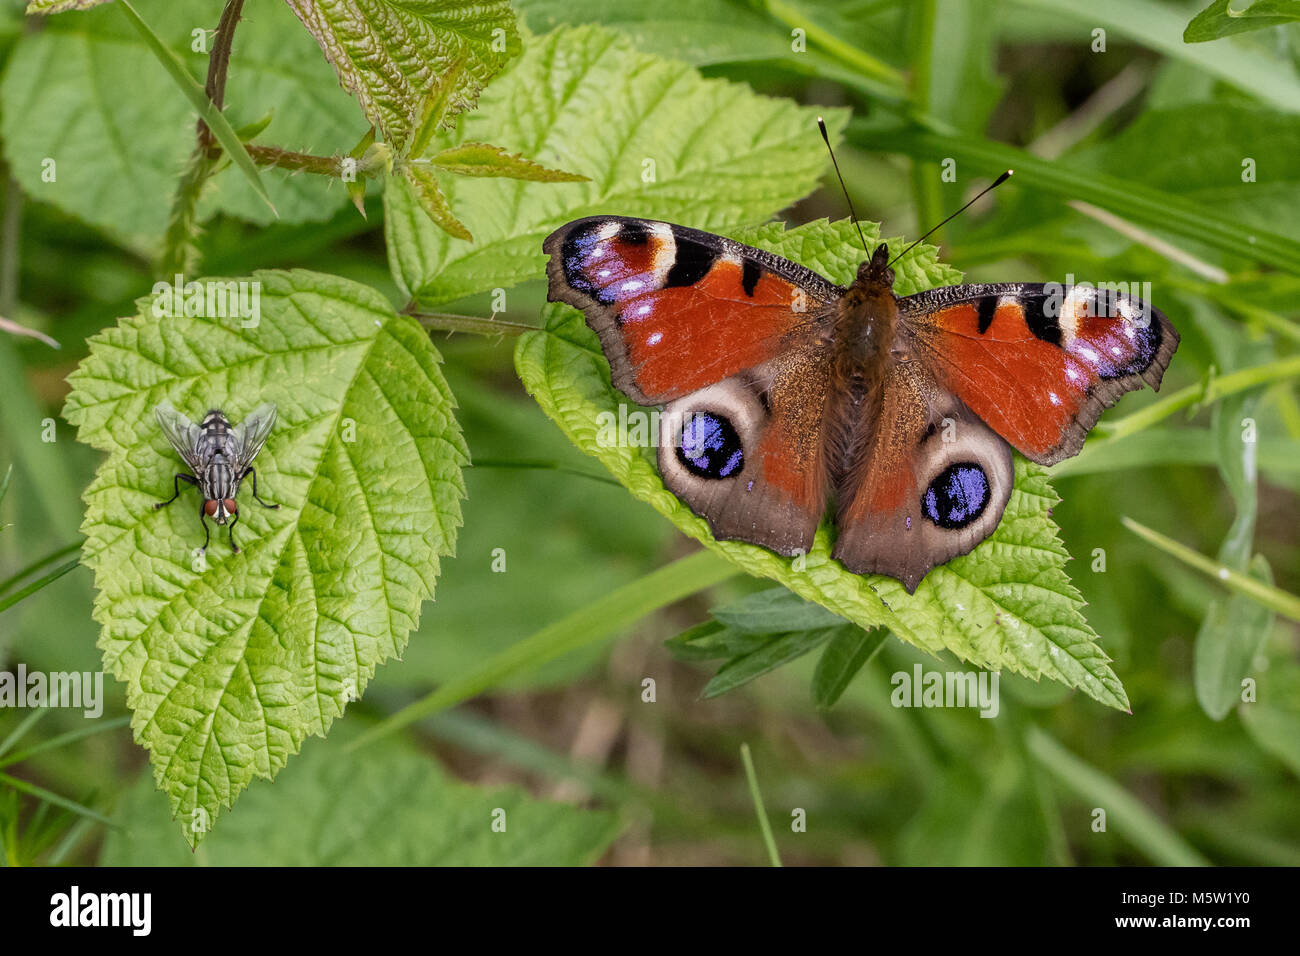 Peacock butterfly and gray flesh fly - Stock Image